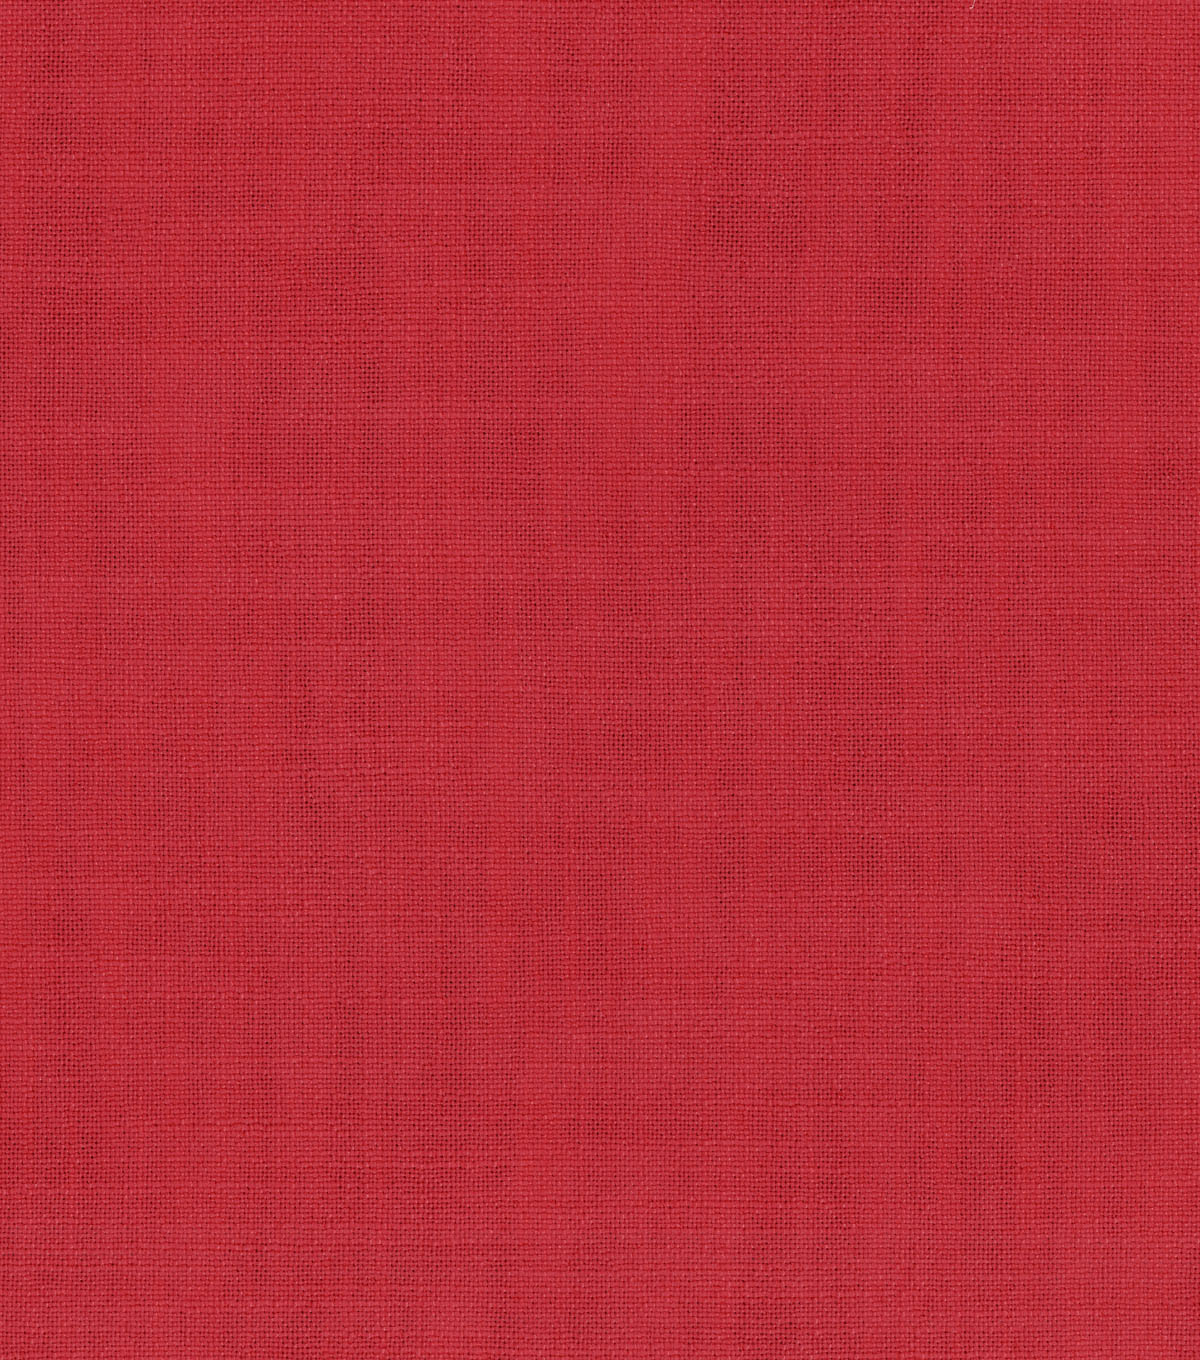 P/K Lifestyles Solid Fabric-Gramercy Solid/Cherry